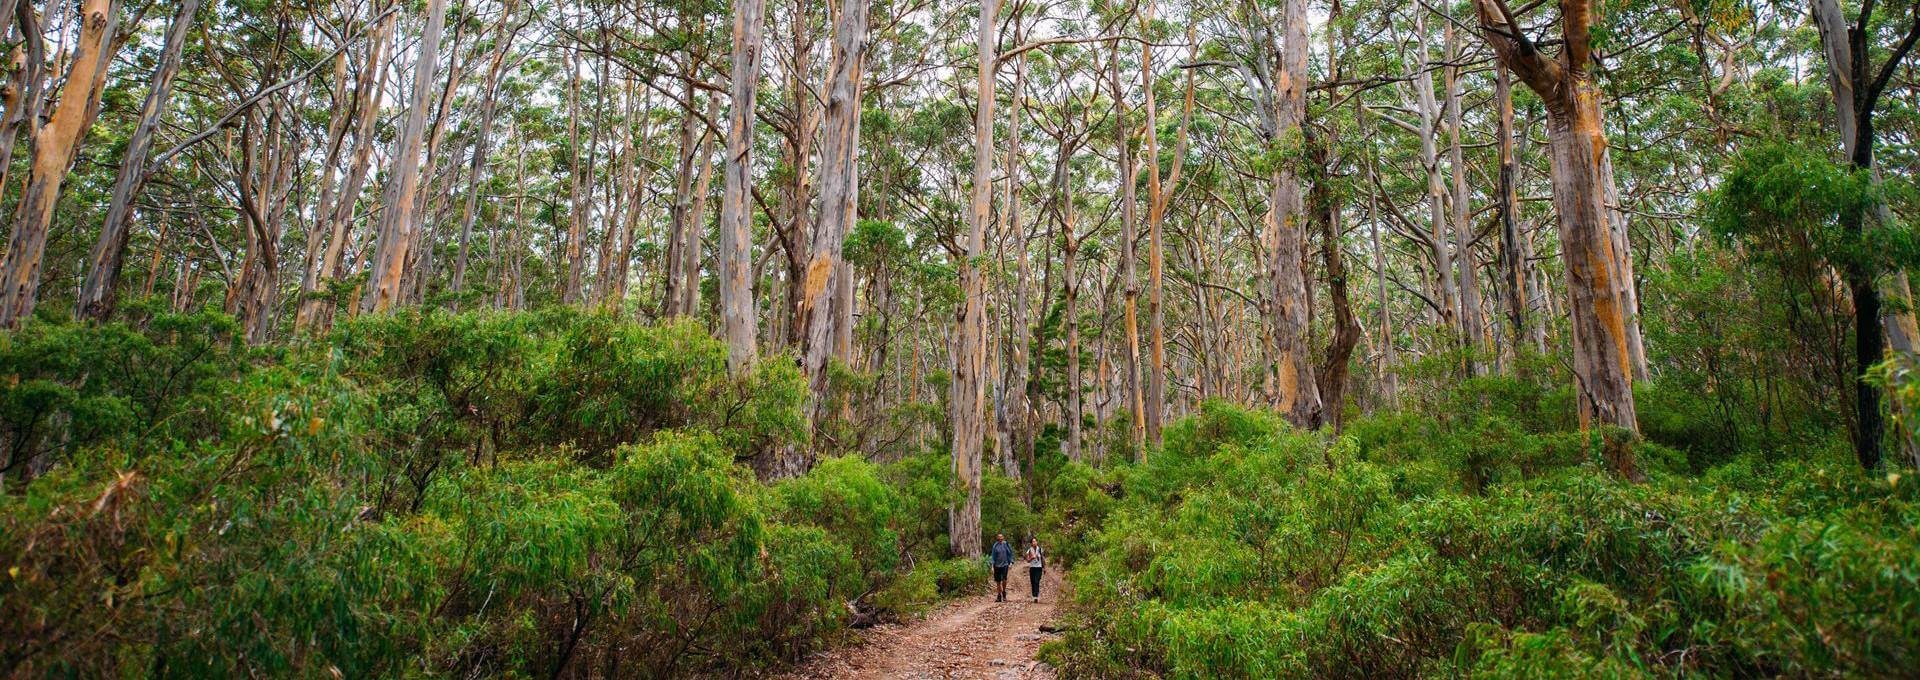 tall tree forest Margaret River region South Western Australia